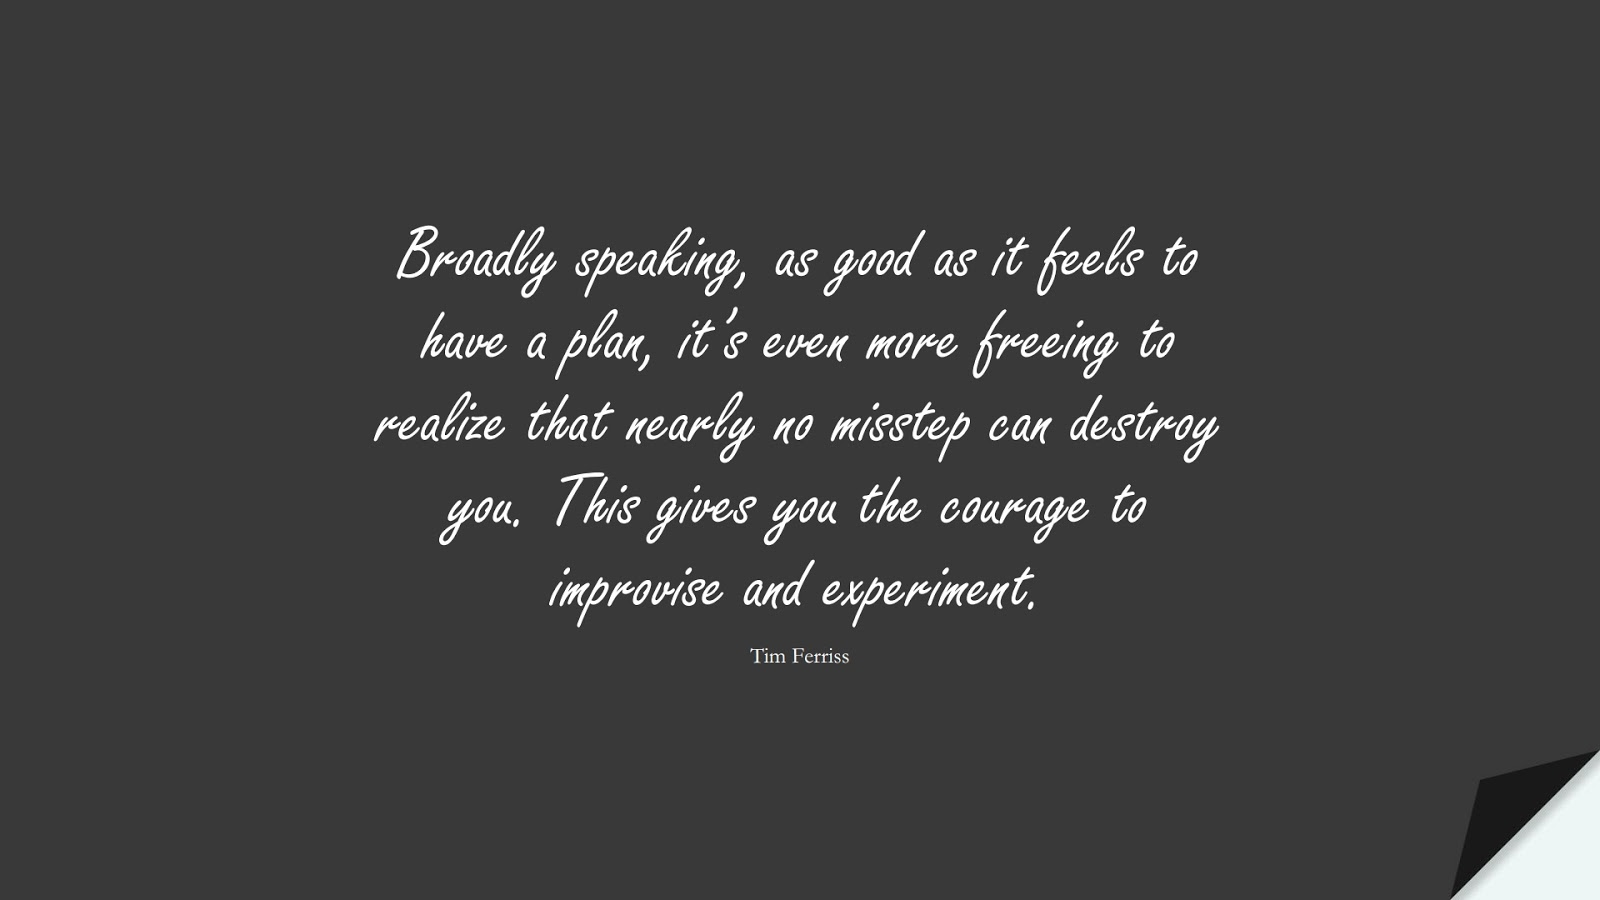 Broadly speaking, as good as it feels to have a plan, it's even more freeing to realize that nearly no misstep can destroy you. This gives you the courage to improvise and experiment. (Tim Ferriss);  #TimFerrissQuotes